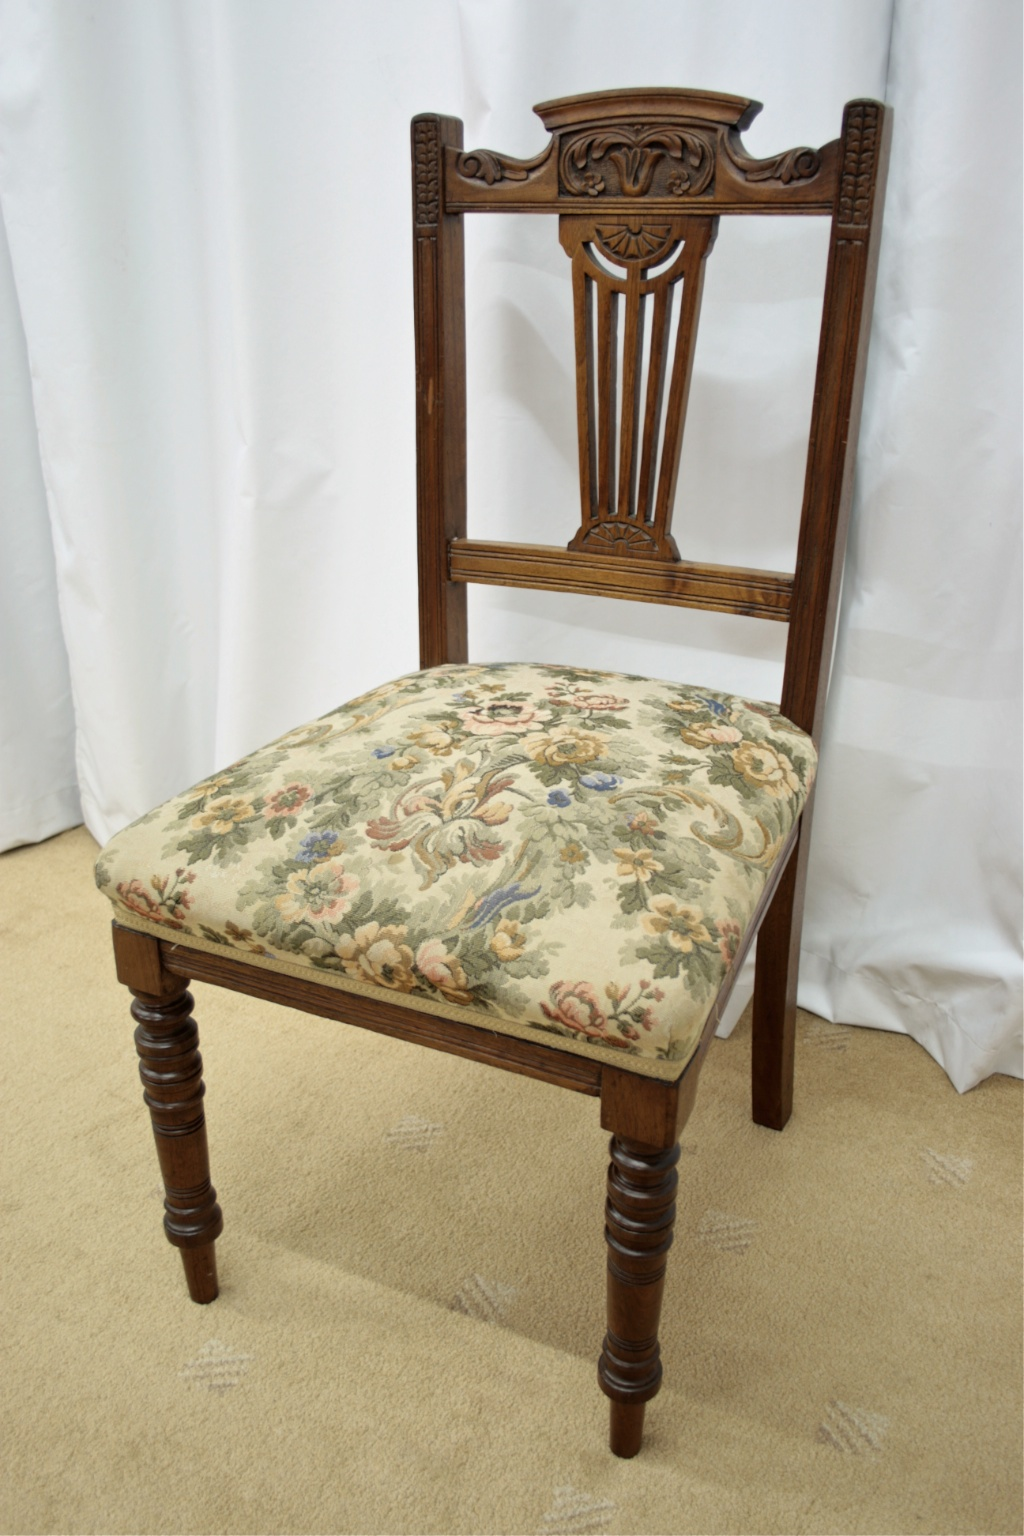 A set of six 19th century walnut dining chairs with carved & pierced back  splats. The chairs have overstuffed floral upholstered spring seats, ... - Six 19th Century Walnut Dining Chairs For Sale Antiques.com